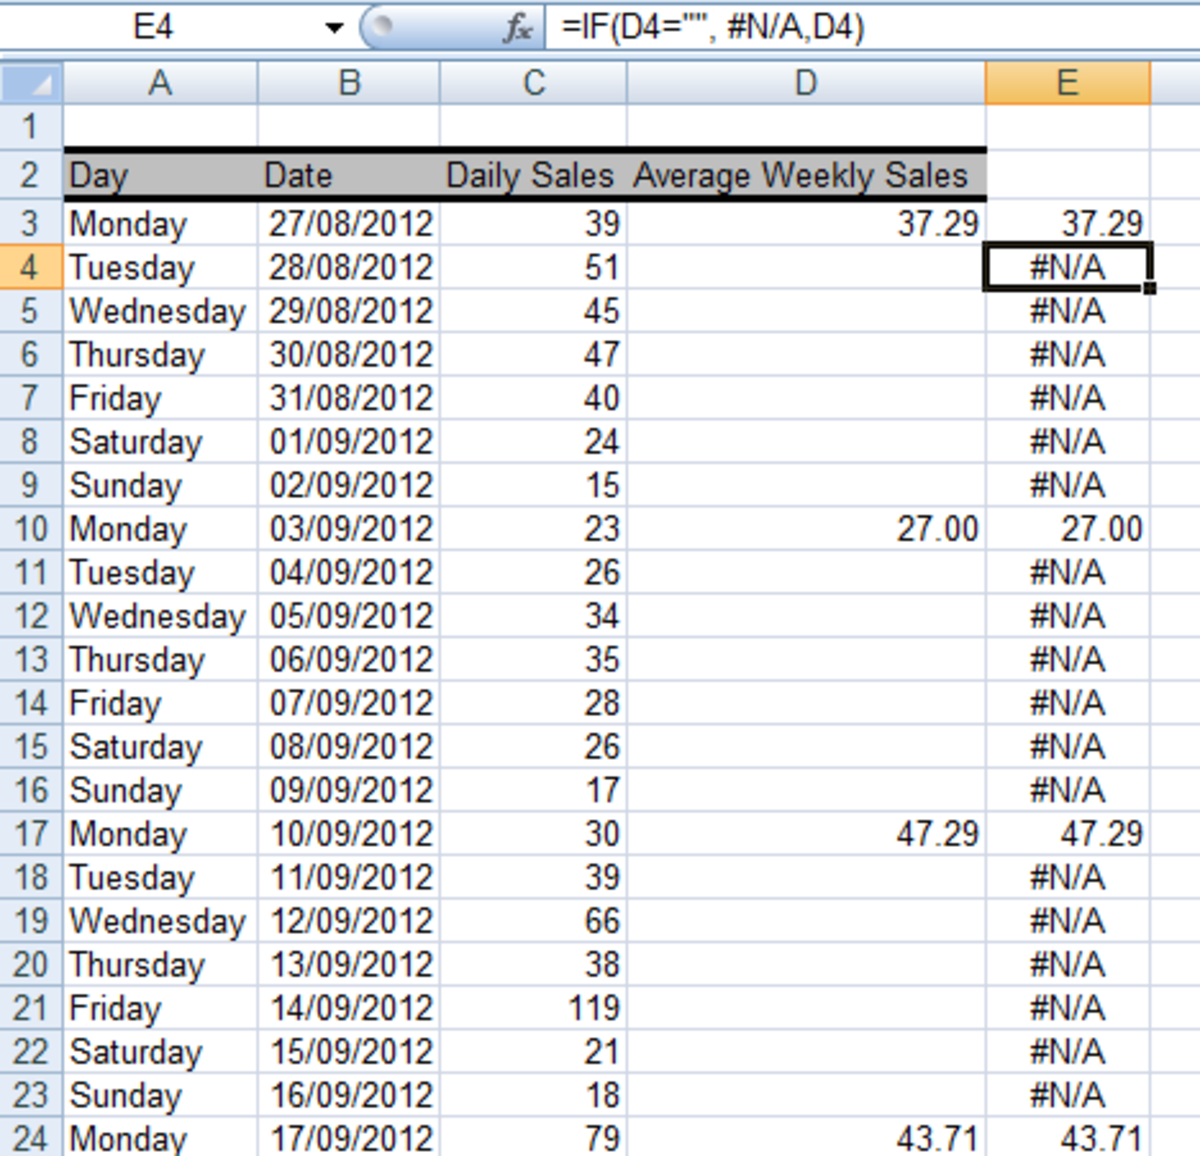 Ediblewildsus  Stunning How To Get Excel  And  To Ignore Empty Cells In A Chart Or  With Exciting Using The If Function In A Formula To Convert Empty Cells To Na With Alluring Percentiles Excel Also Free Project Management Templates Excel In Addition New In Excel  And Bubble Chart Excel  As Well As Histogram On Excel  Additionally T Critical Value Excel From Turbofuturecom With Ediblewildsus  Exciting How To Get Excel  And  To Ignore Empty Cells In A Chart Or  With Alluring Using The If Function In A Formula To Convert Empty Cells To Na And Stunning Percentiles Excel Also Free Project Management Templates Excel In Addition New In Excel  From Turbofuturecom